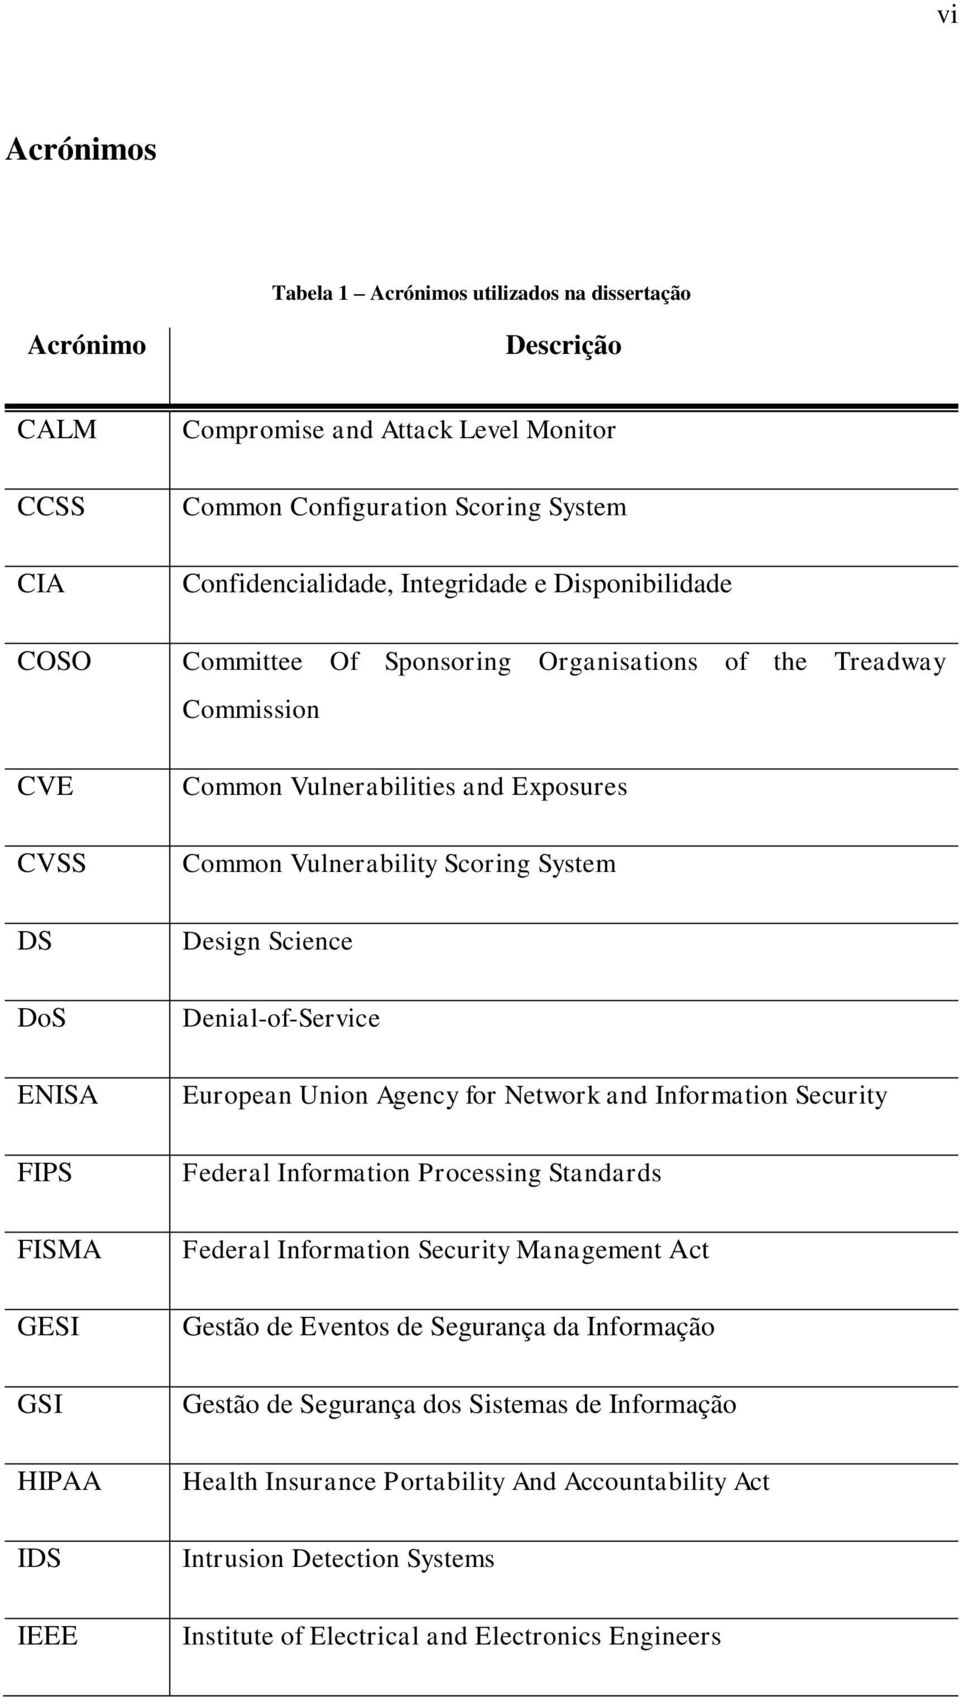 Vulnerability Scoring System Design Science Denial-of-Service European Union Agency for Network and Information Security Federal Information Processing Standards Federal Information Security